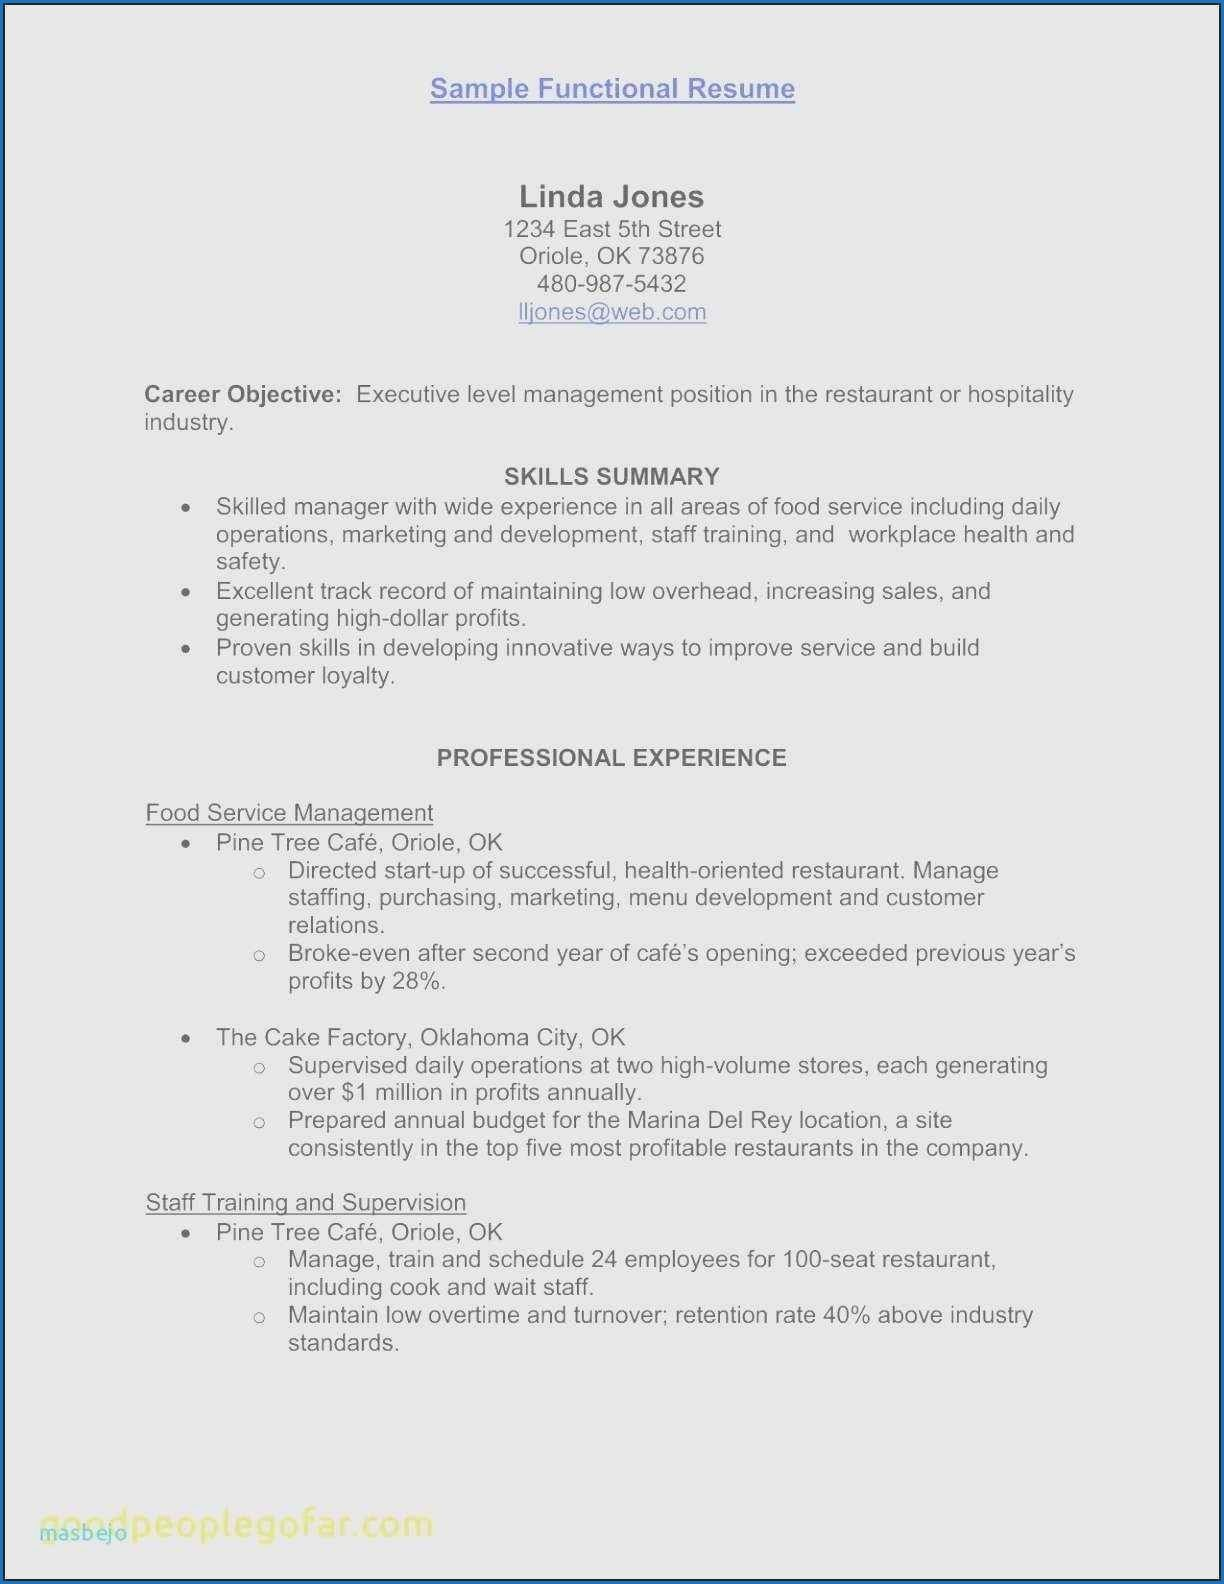 11 Sample Resume For Sales Operations Manager Check More At Https Www Ortelle Org Sample Resume For Sales Operations Ma Resume Examples Resume Manager Resume